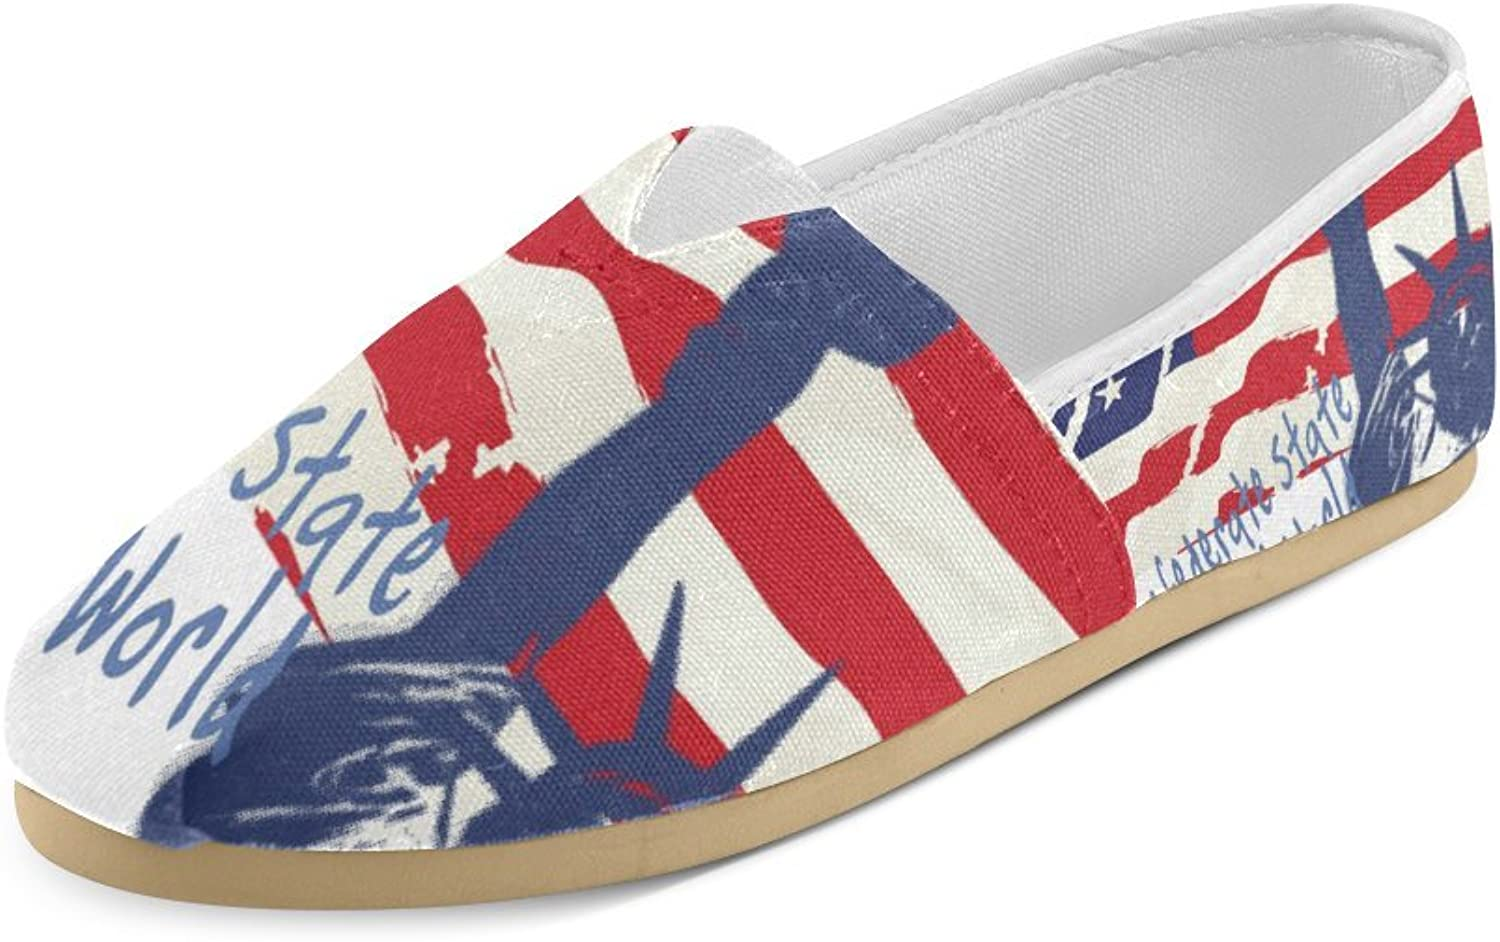 HUANGDAISY Unisex shoes Statue of Liberty Casual Canvas Loafers for Bia Kids Girl Or Men